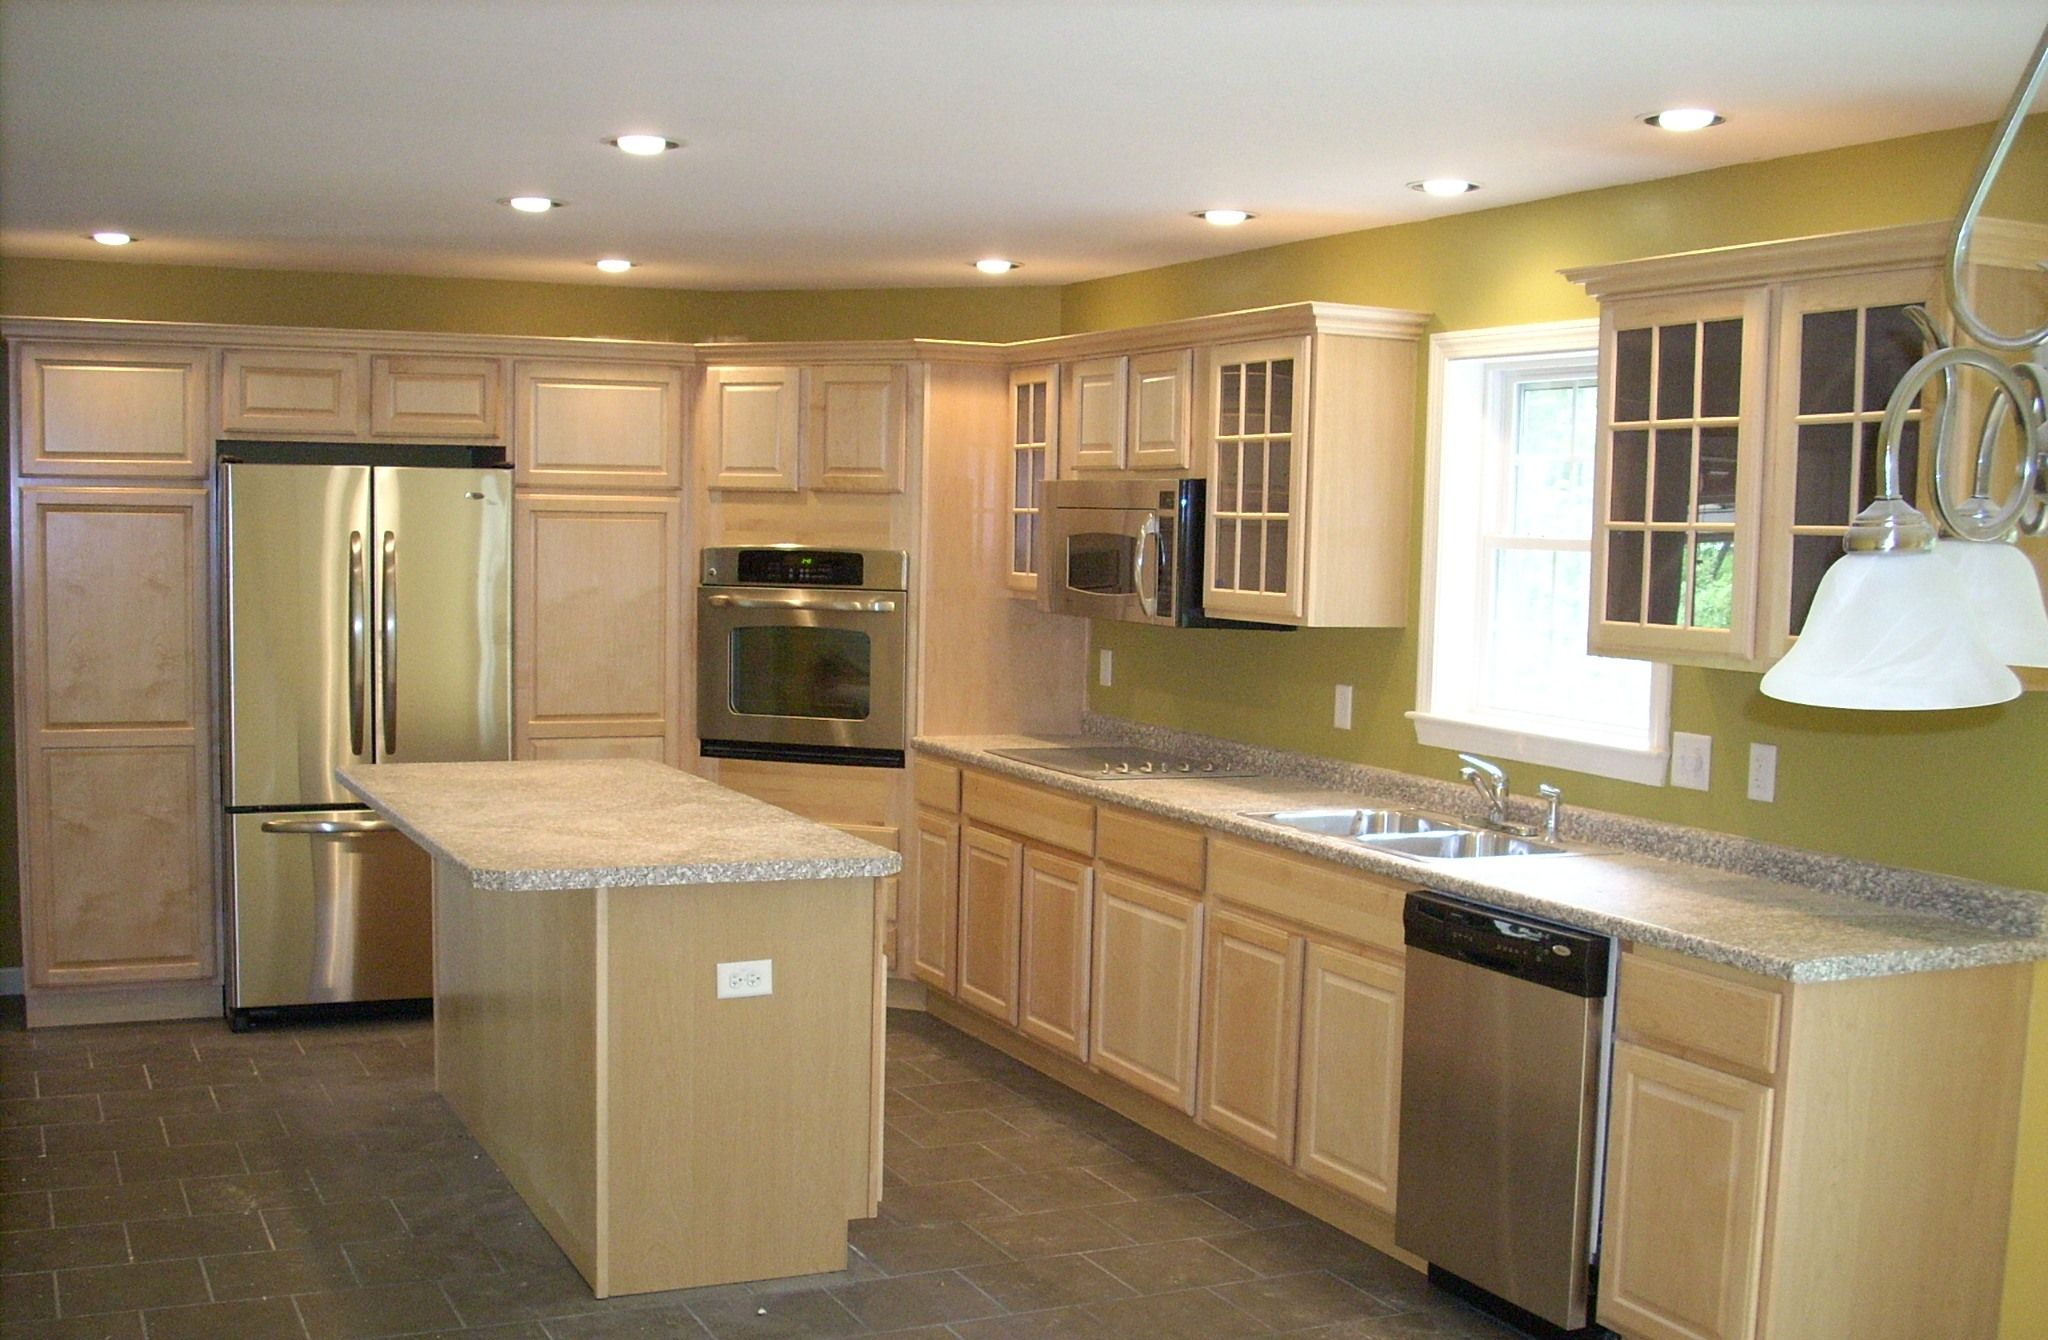 Recessed lights, corner wall oven, pantry cabinets aside ...